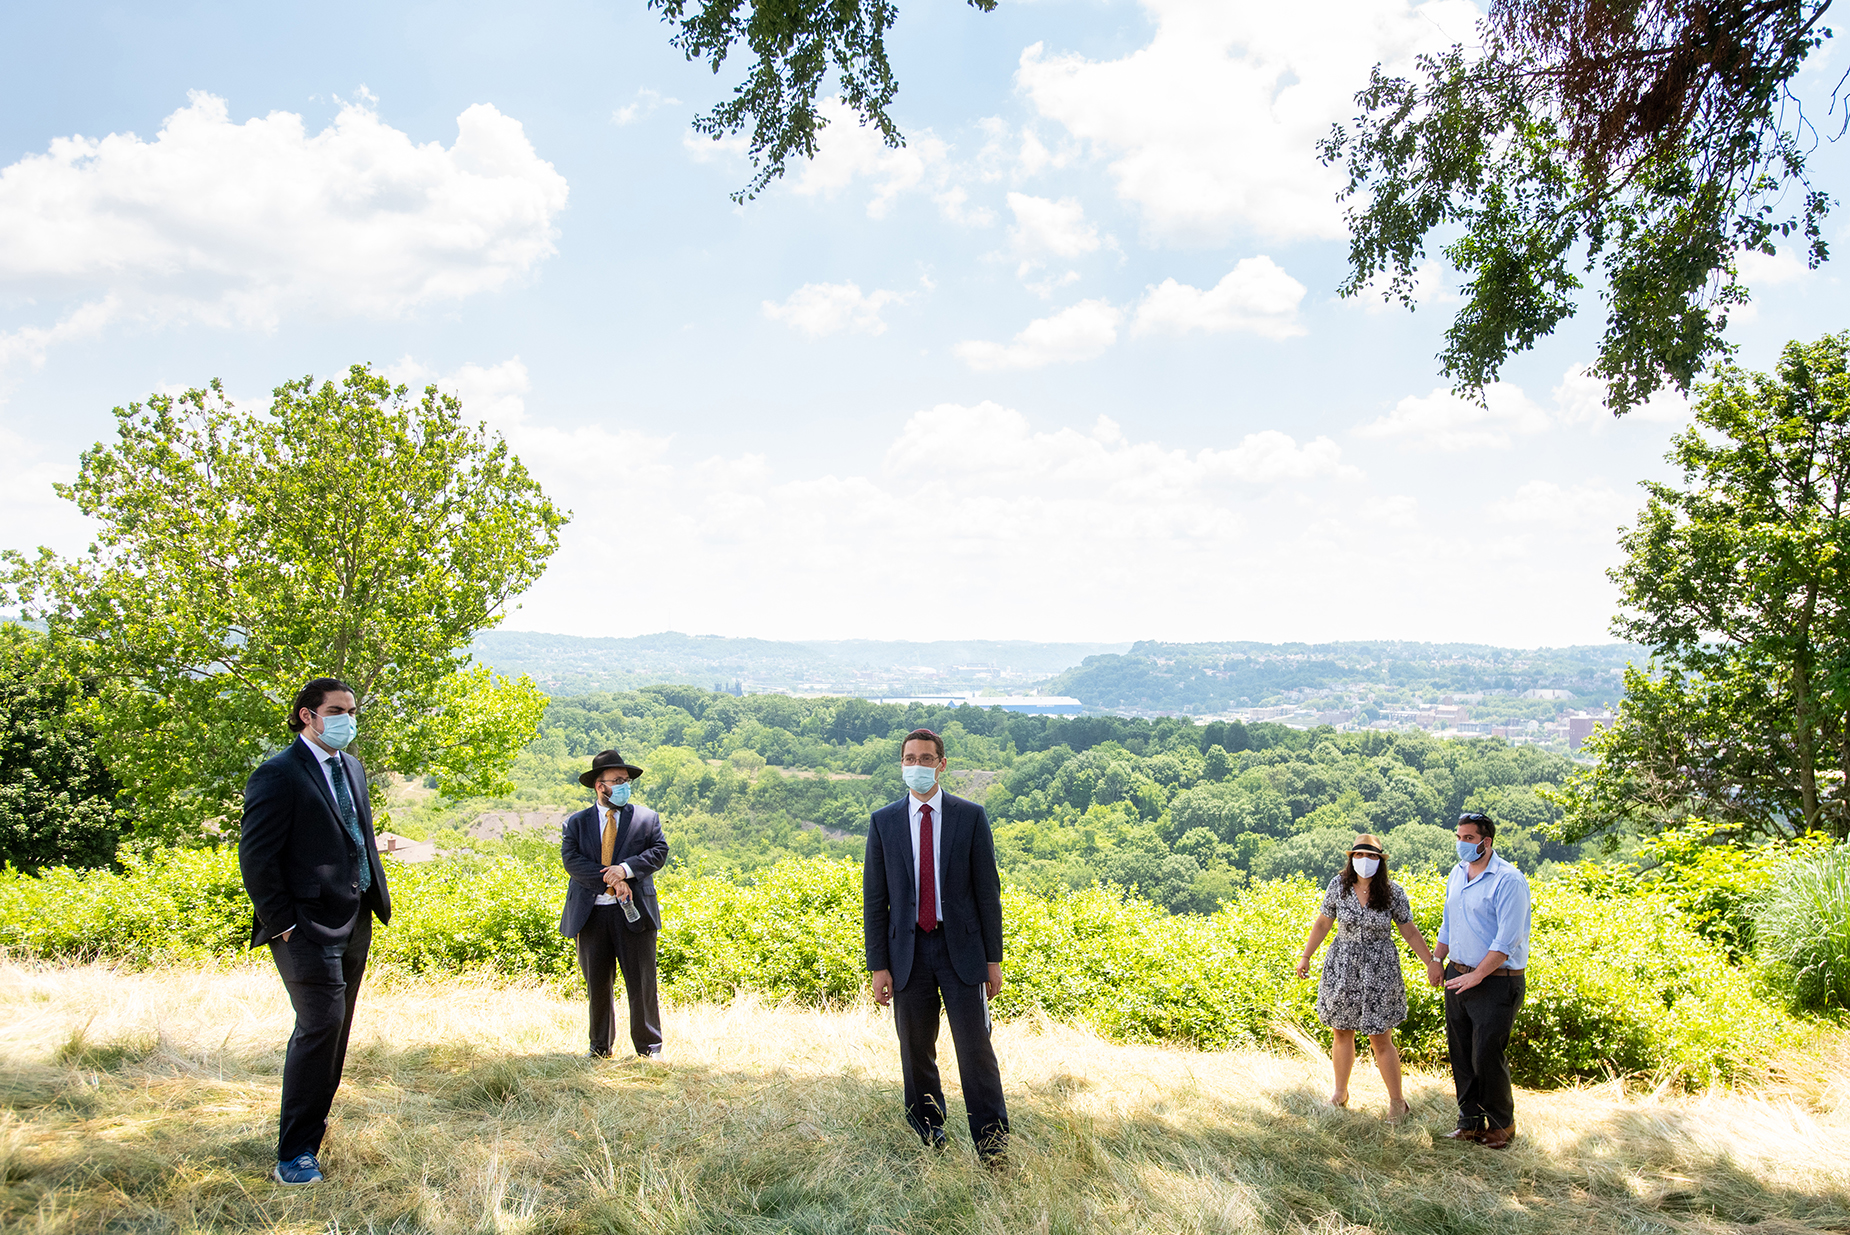 Pittsburgh Wedding Photographer - PA | Guests stand at least 6 feet apart during the ceremony